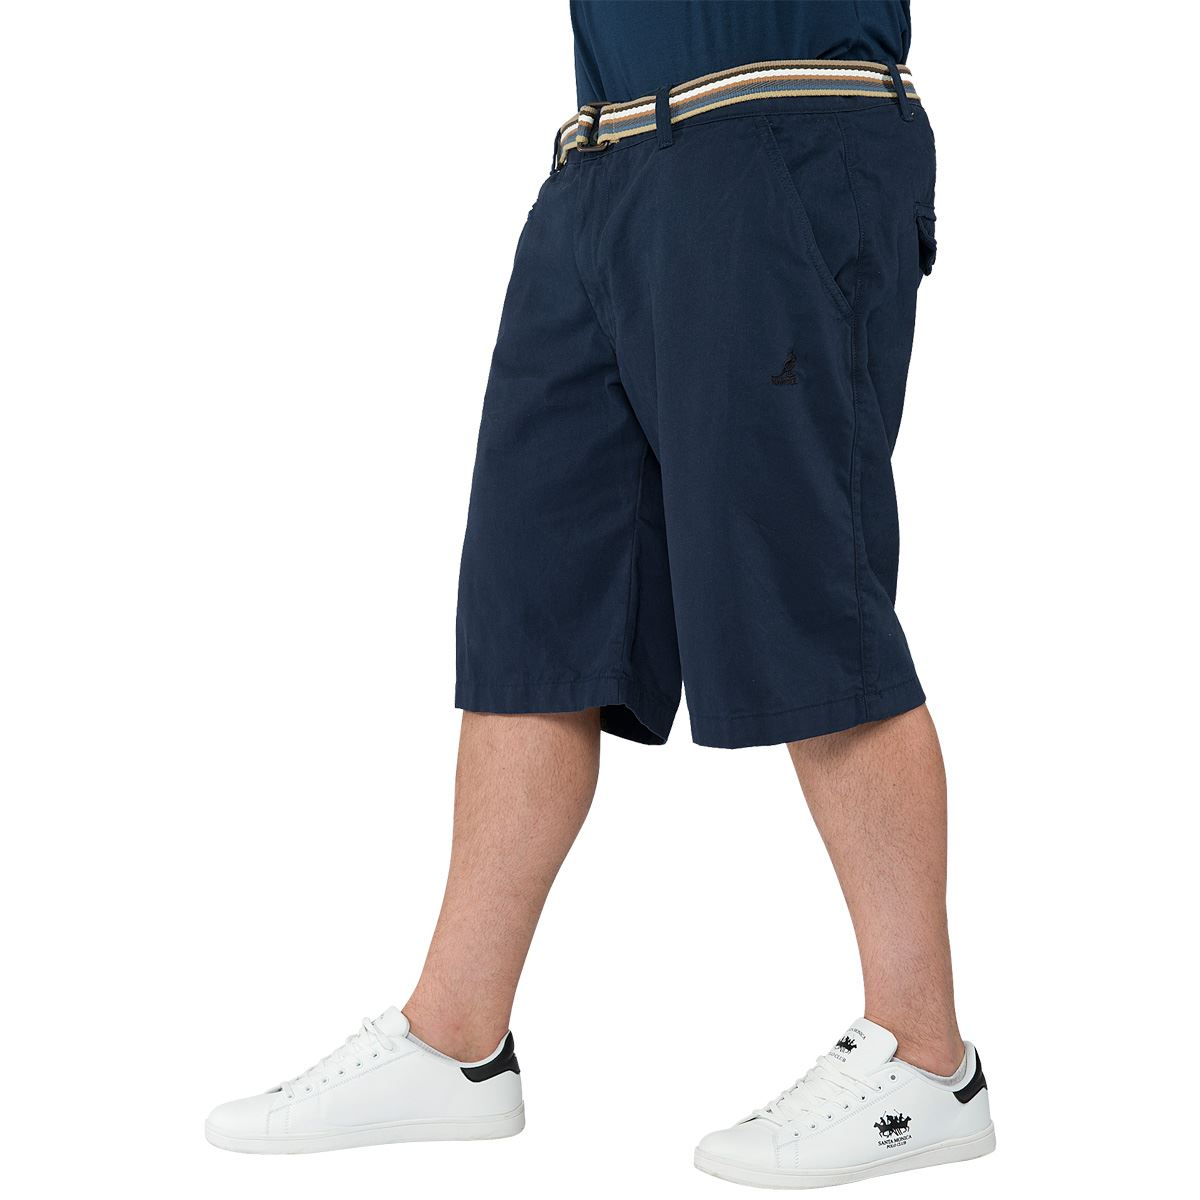 senonsdownload-gv.cf: Short Men Clothing. From The Community. Bicycle shorts tag size is Asian size that runs smaller than US Amazon Essentials Men's Classic-Fit Short. by Amazon Essentials. $ $ 15 00 Prime. Exclusively for Prime Members. Some sizes/colors are Prime eligible. 4 out of 5 stars